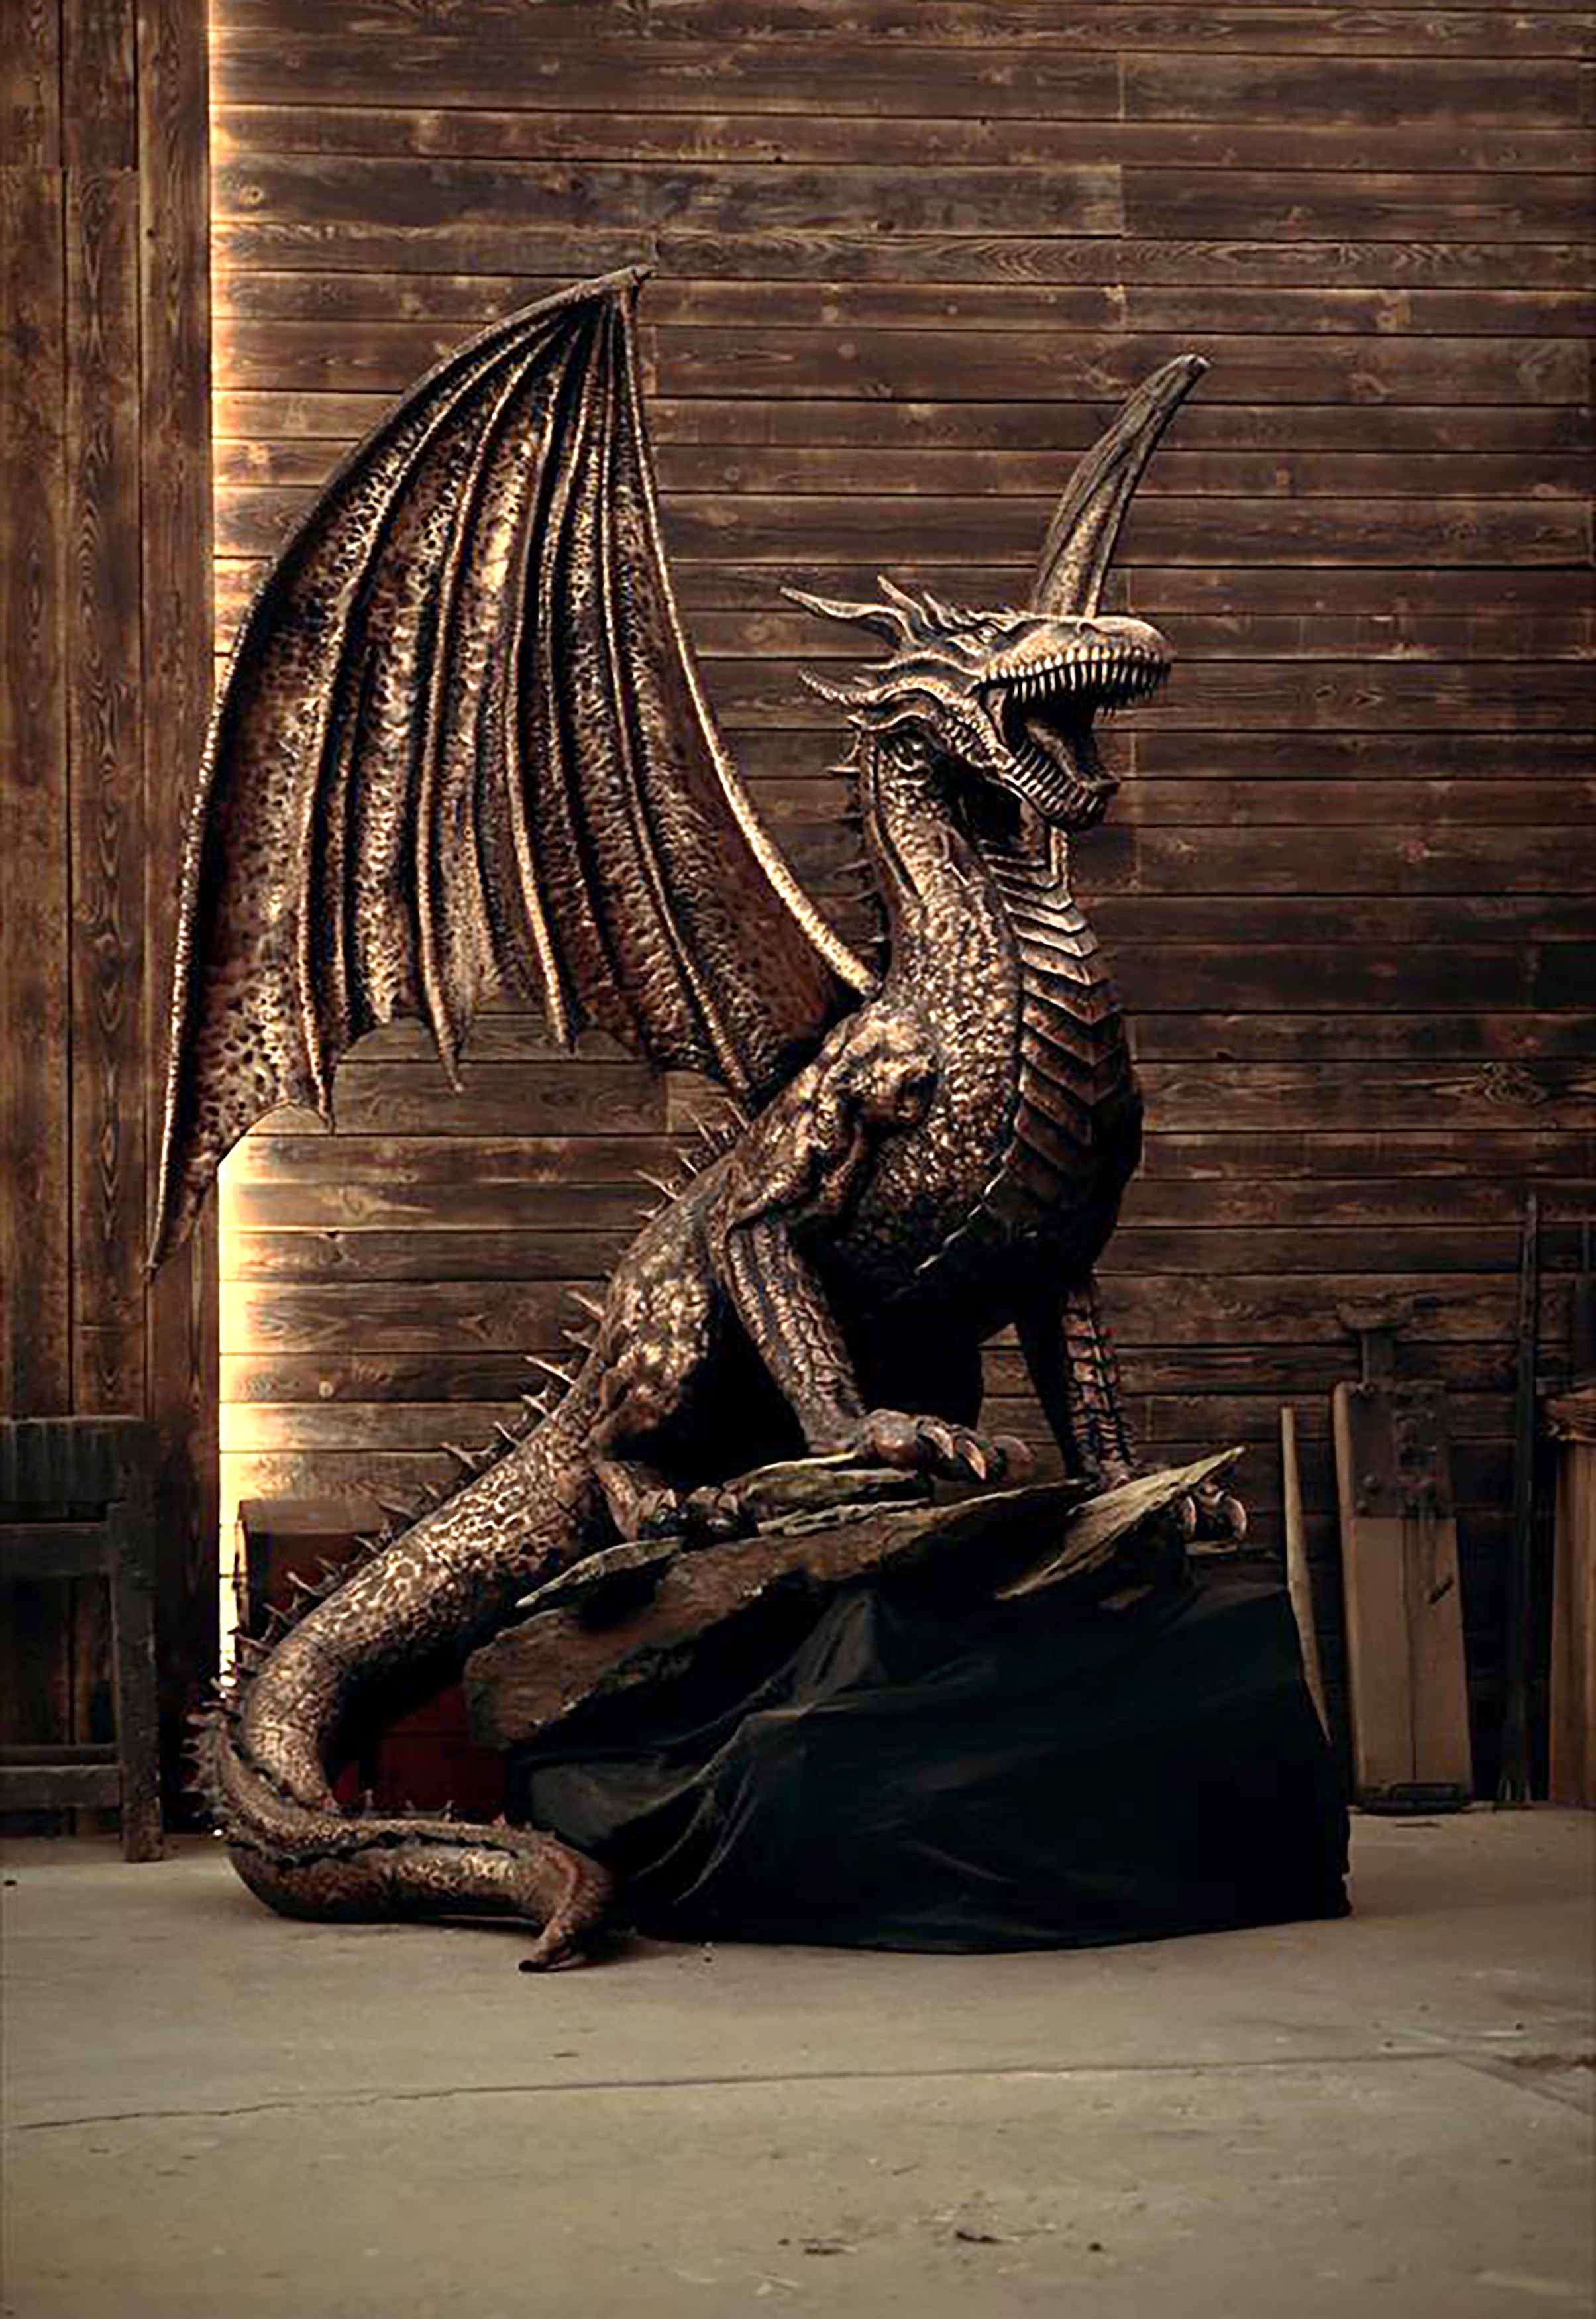 copper dragon from game of thrones